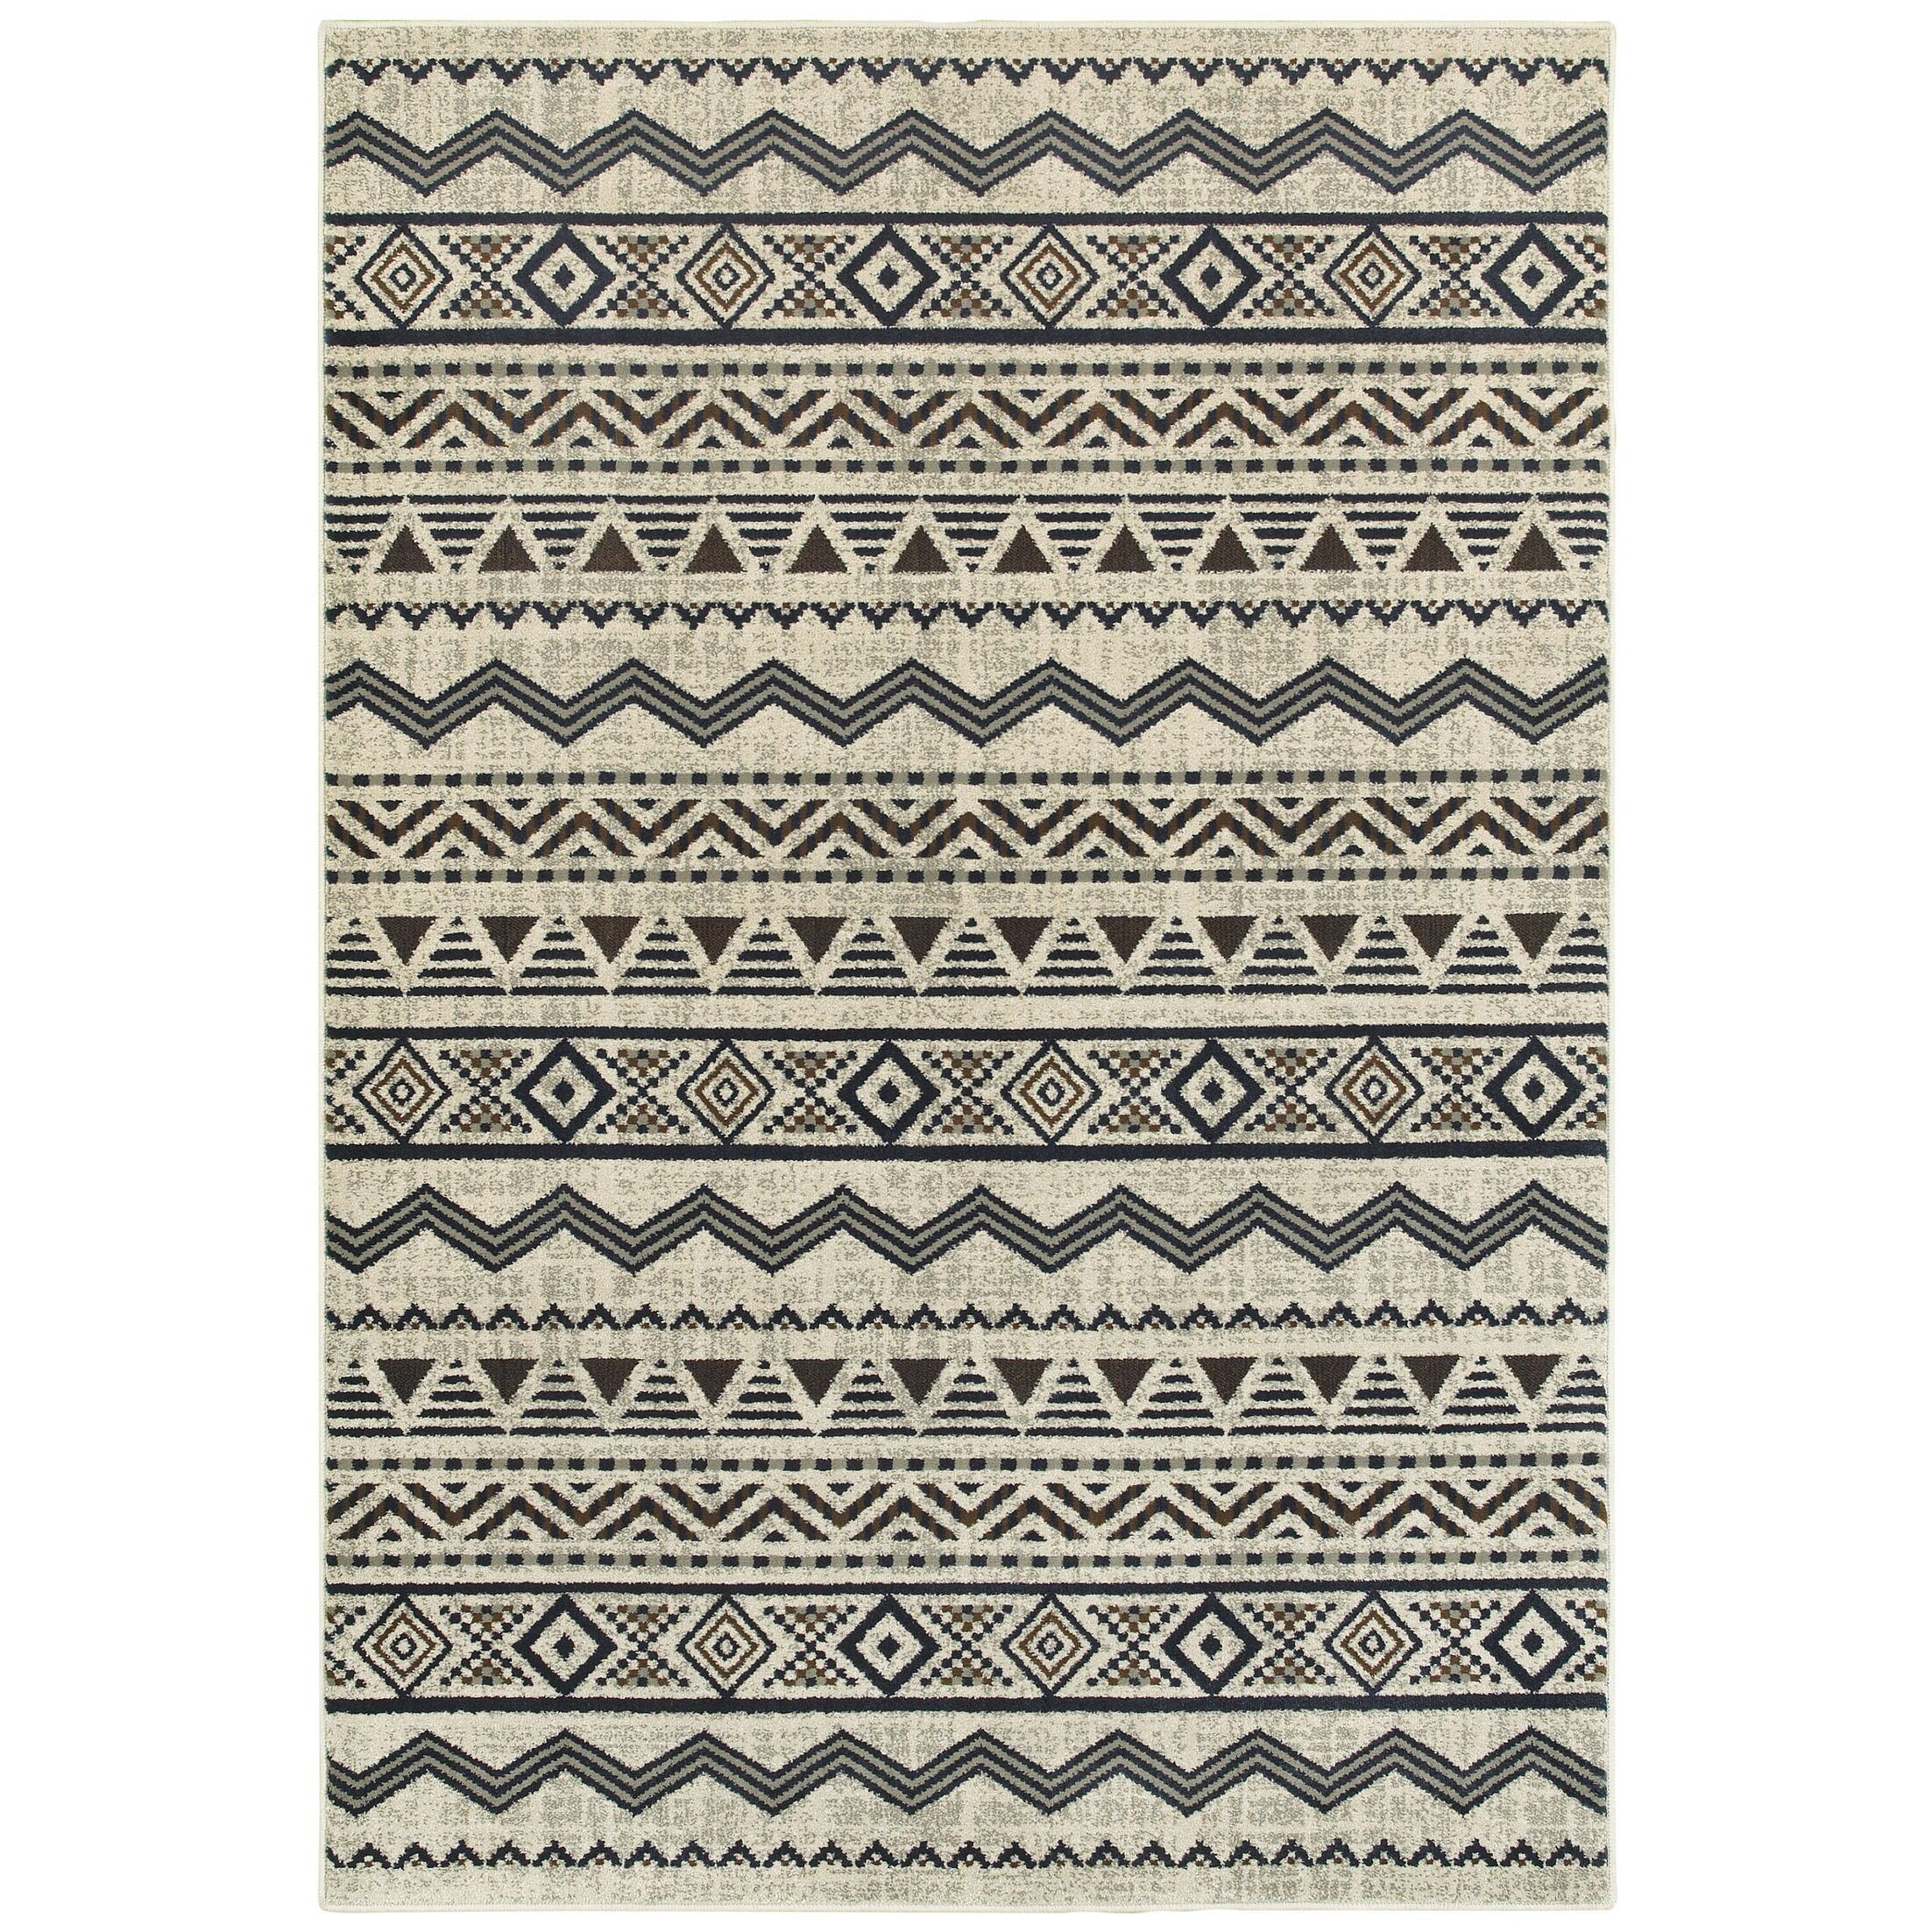 Fletcher Tribal Lines Gray Area Rug Rug Size: Rectangle 7'10